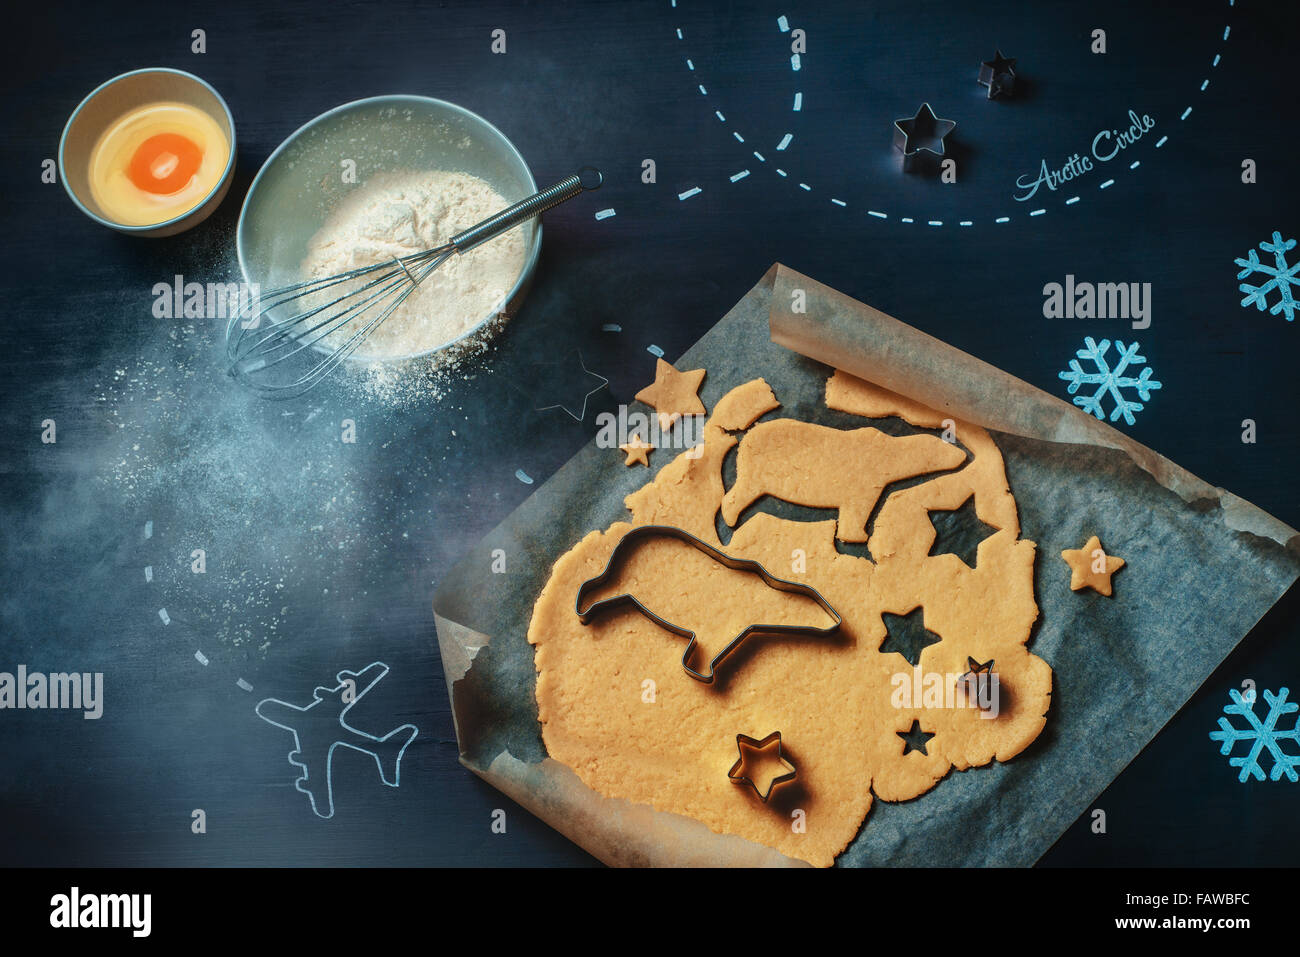 Arctic cookies for Arthur - Stock Image